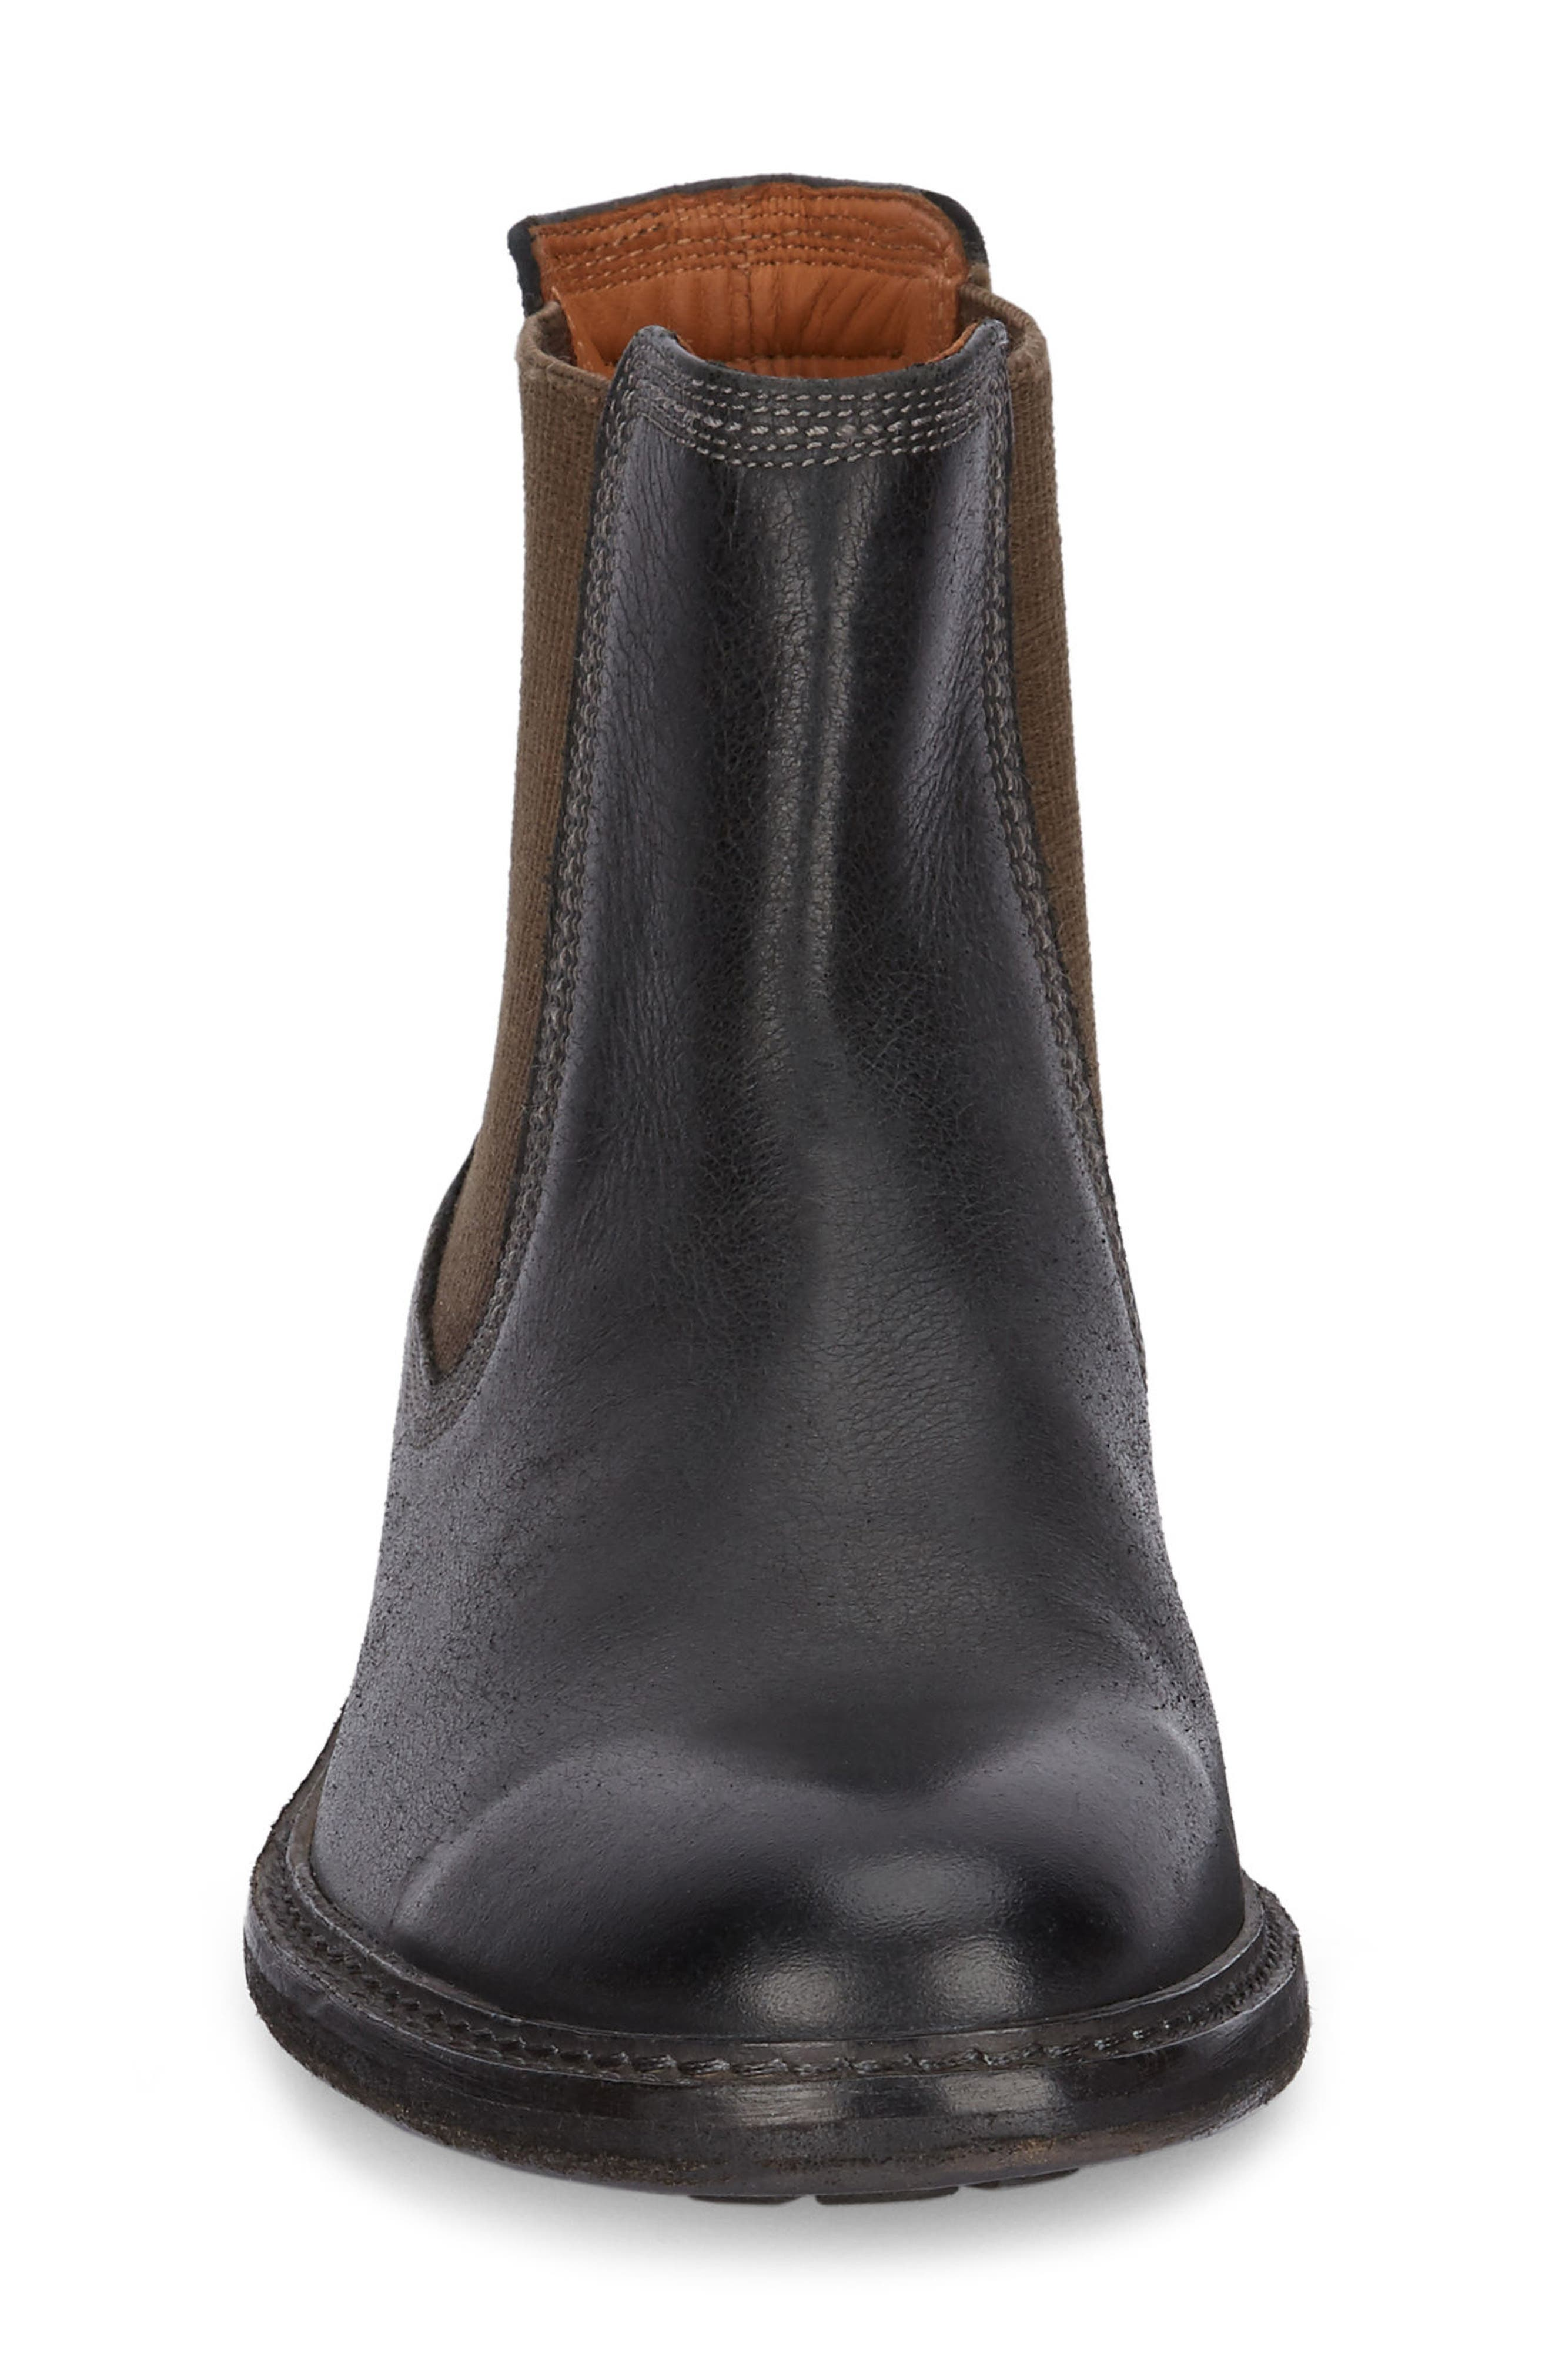 Hendrick Chelsea Boot,                             Alternate thumbnail 4, color,                             Black